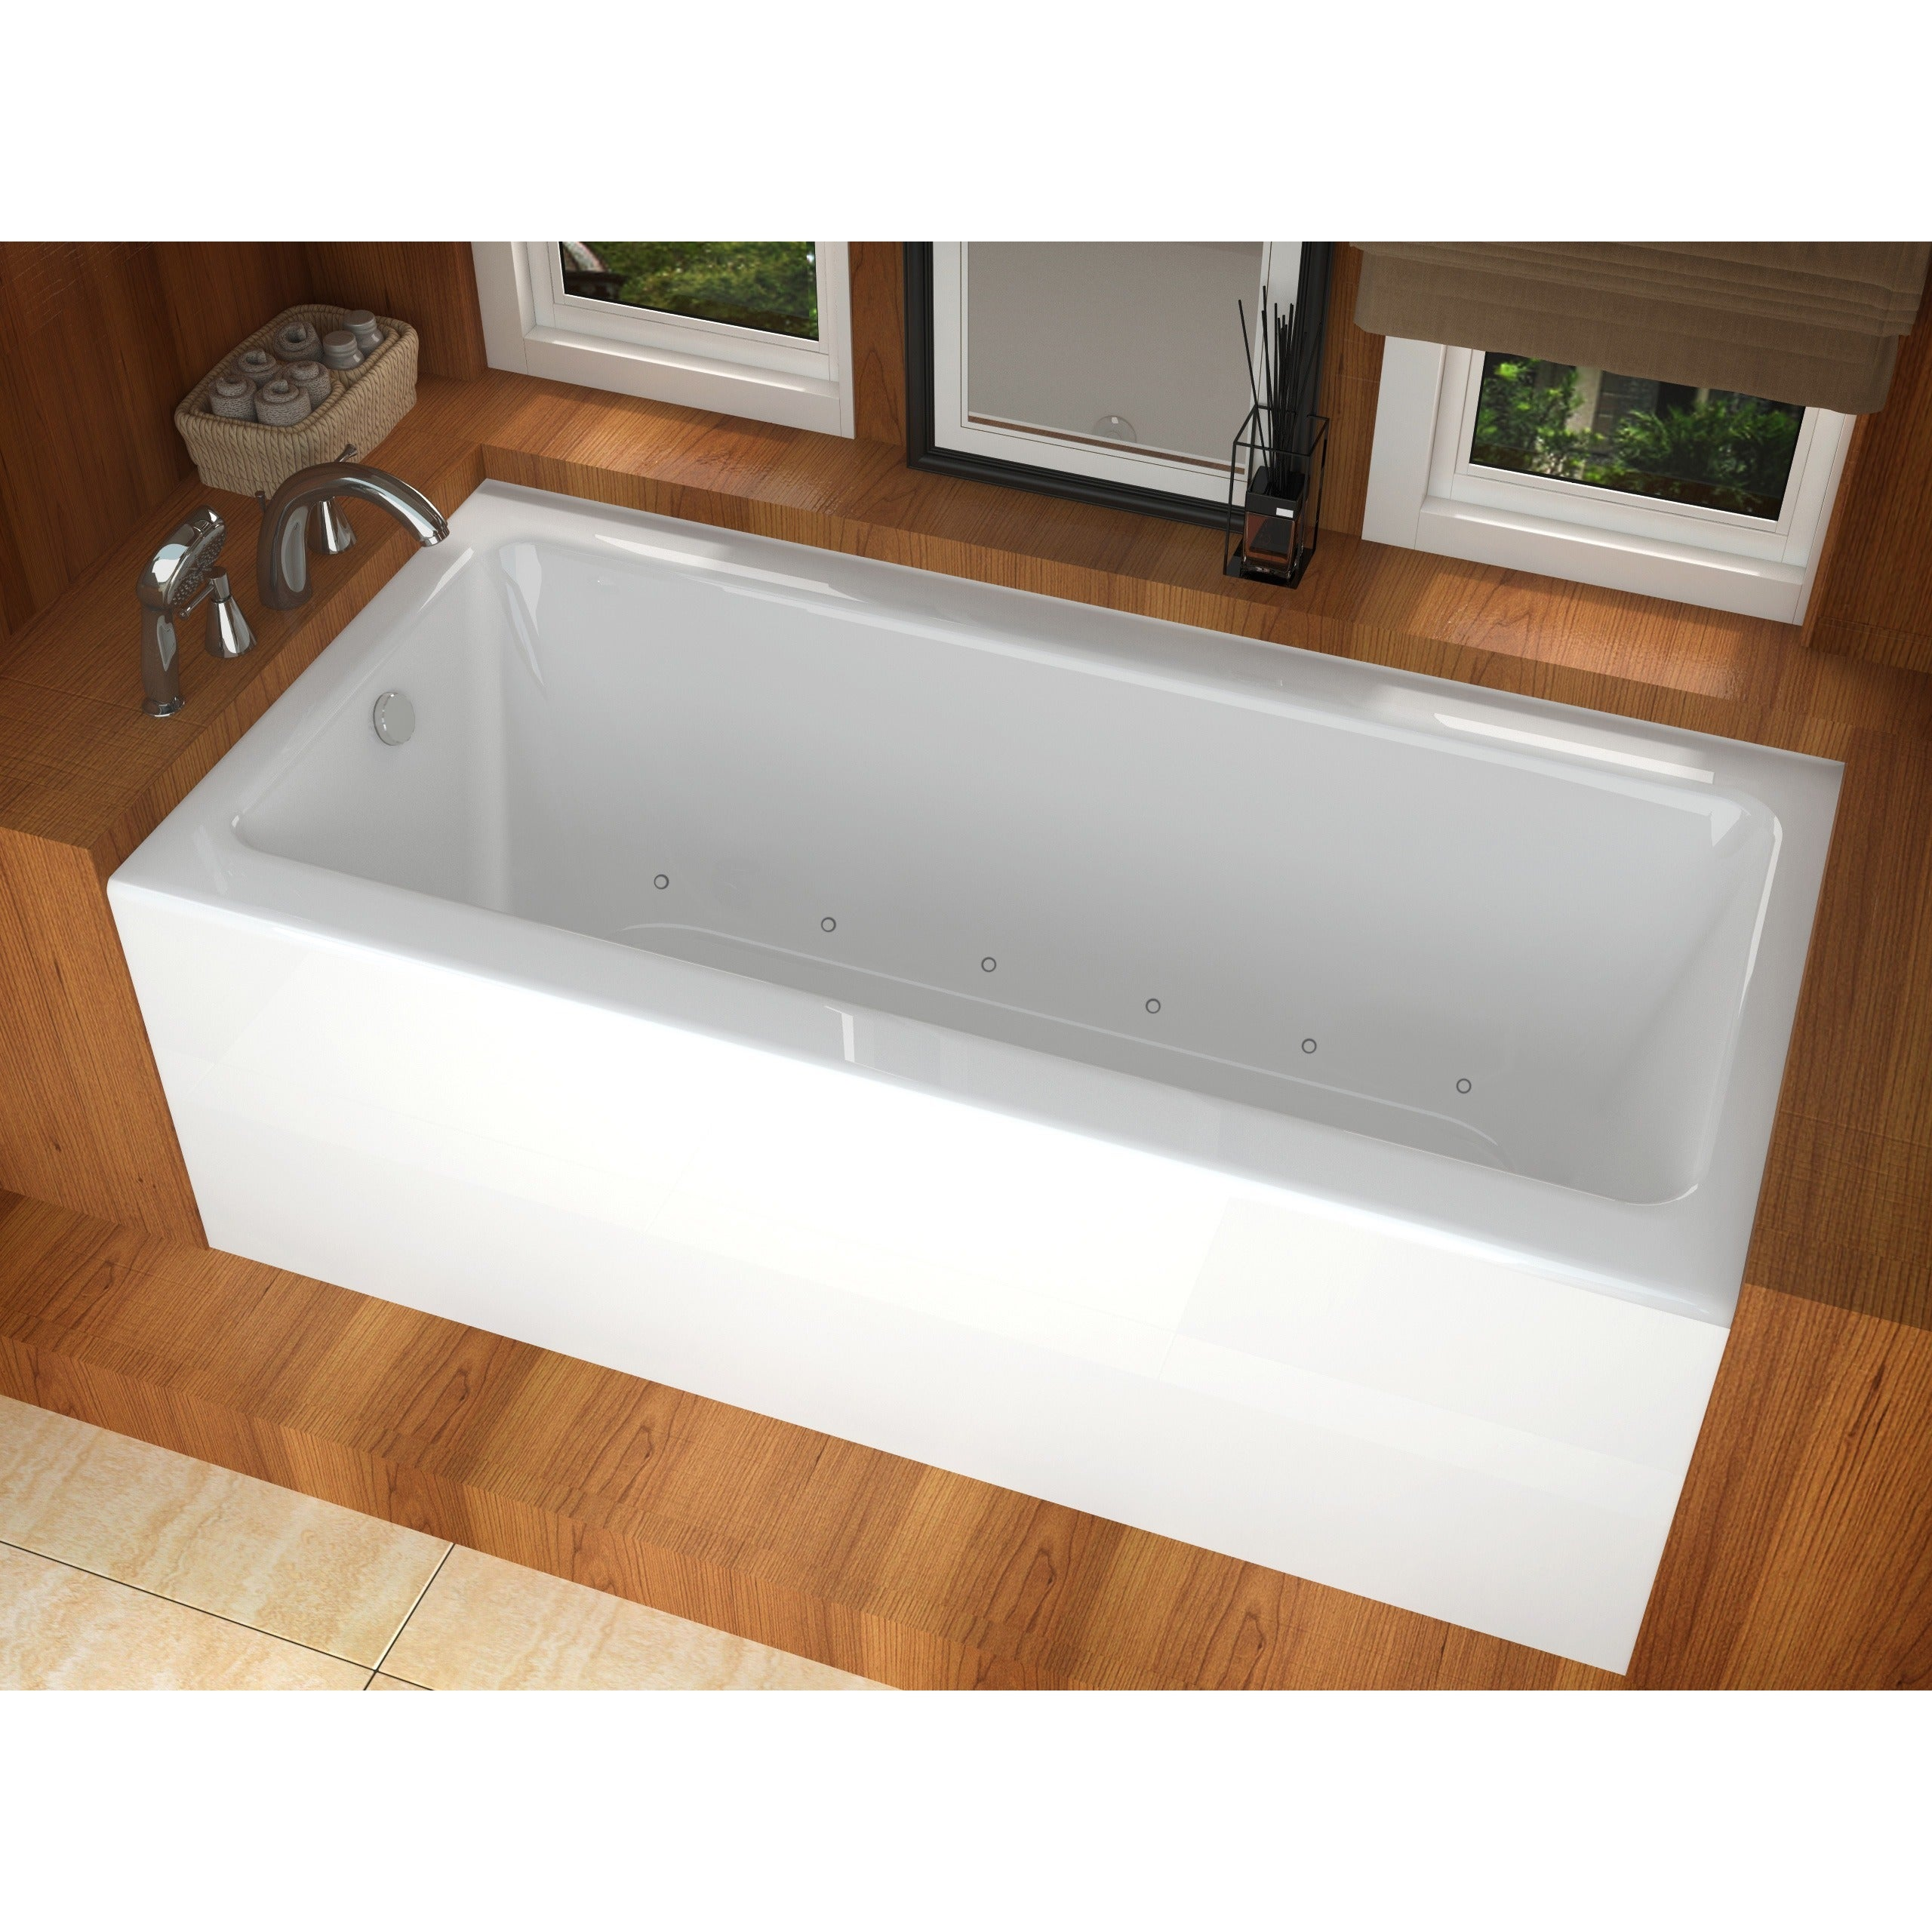 Atlantis Whirlpools Soho 30 x 60 Front Skirted Air Massage Tub with ...